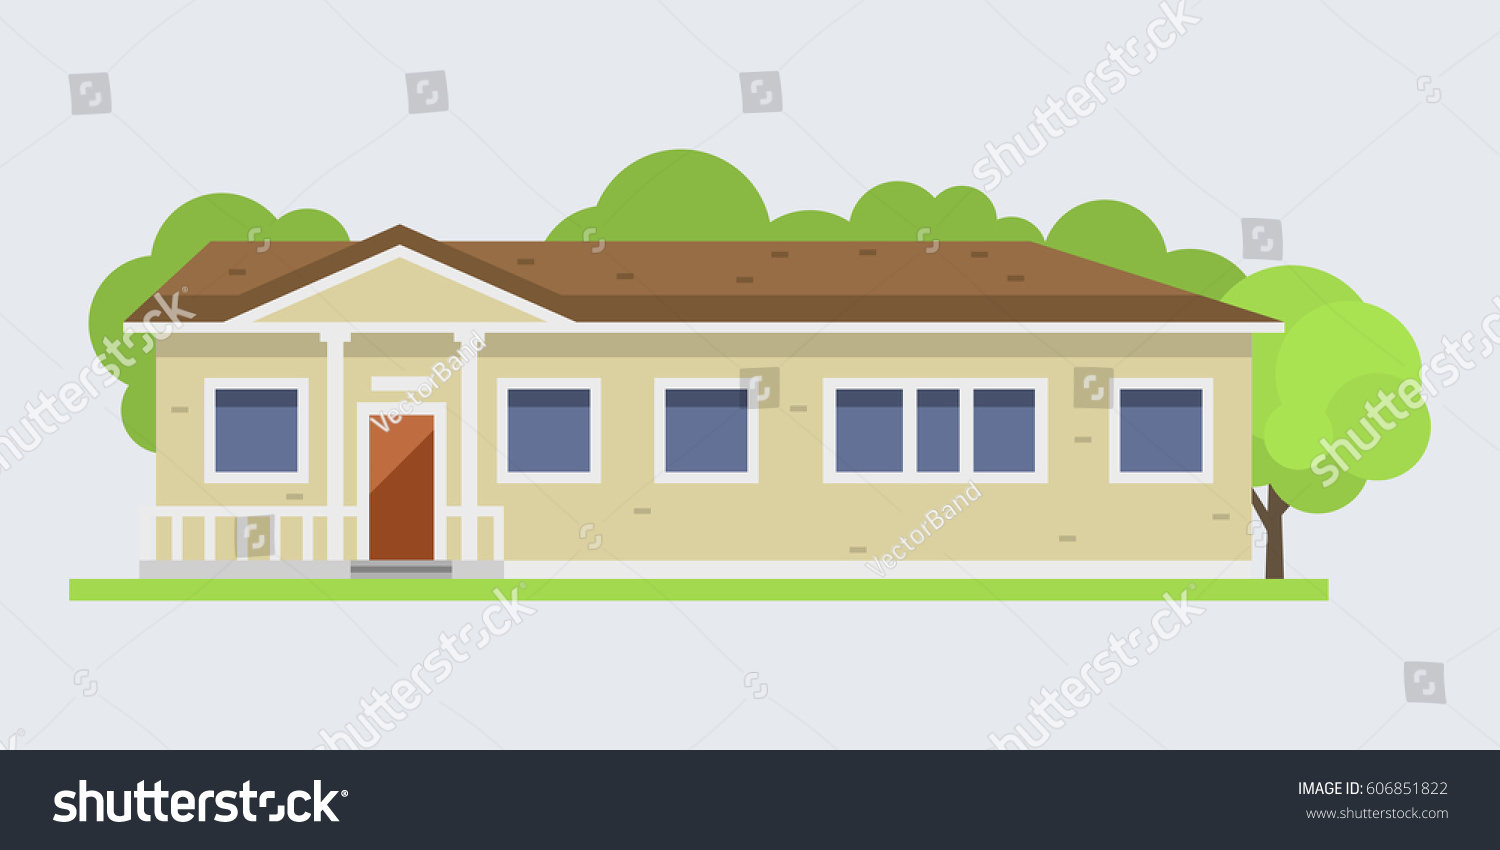 Cute Colorful Flat Style House Village Stock Vector 606851822 ...